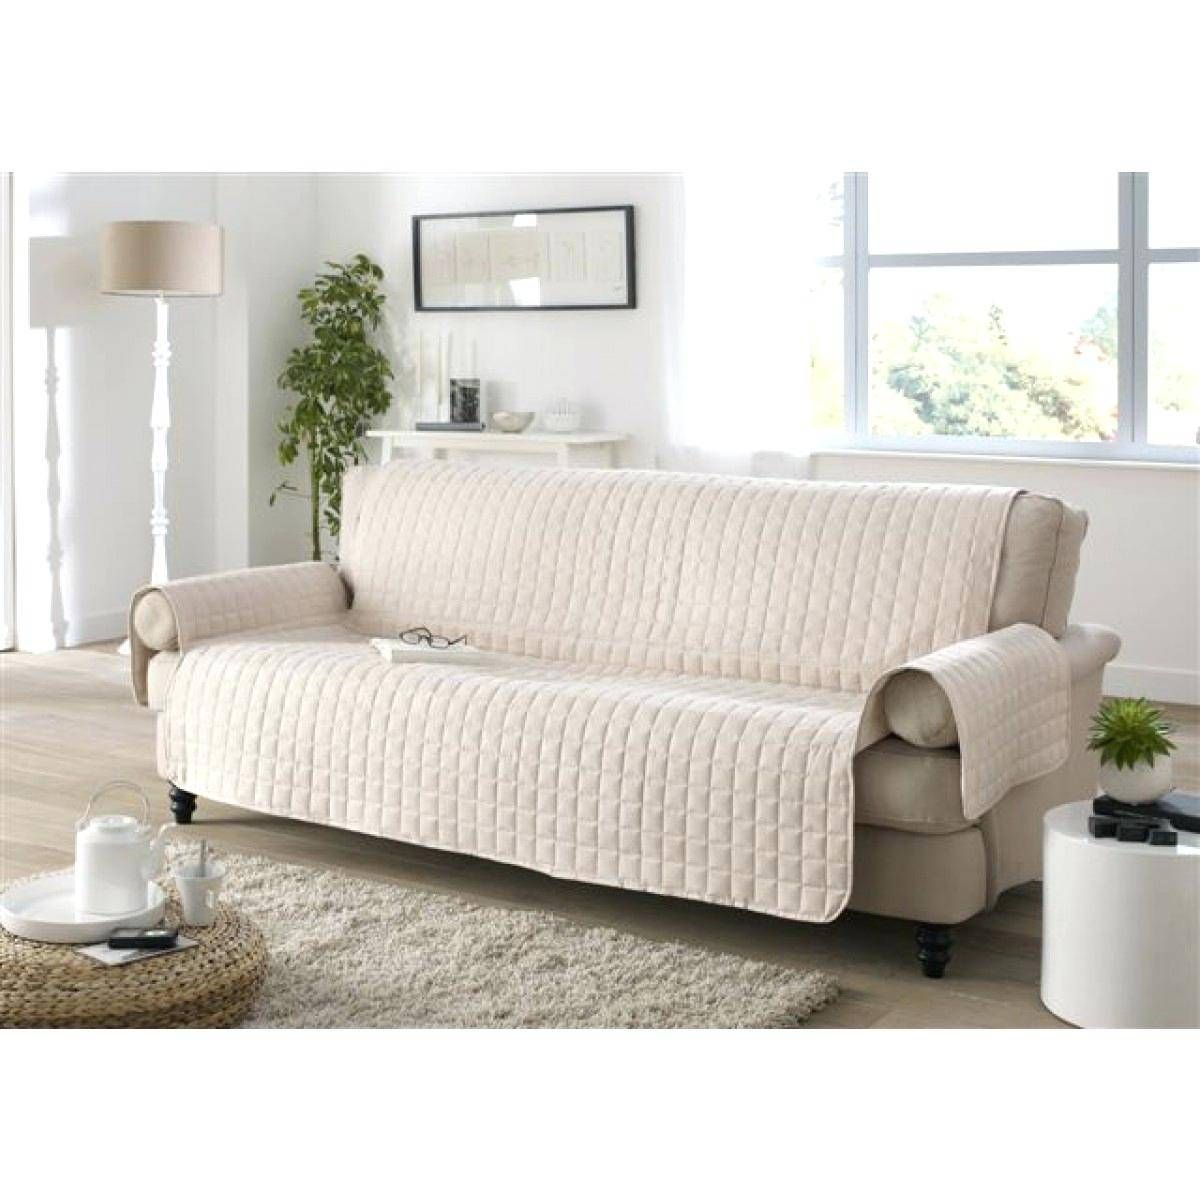 Jete De Canape Maison Du Monde Jete De Lit Beige Canape Les 3 Suisses Awesome Kumpulanine In 2020 Home Decor Home Furniture